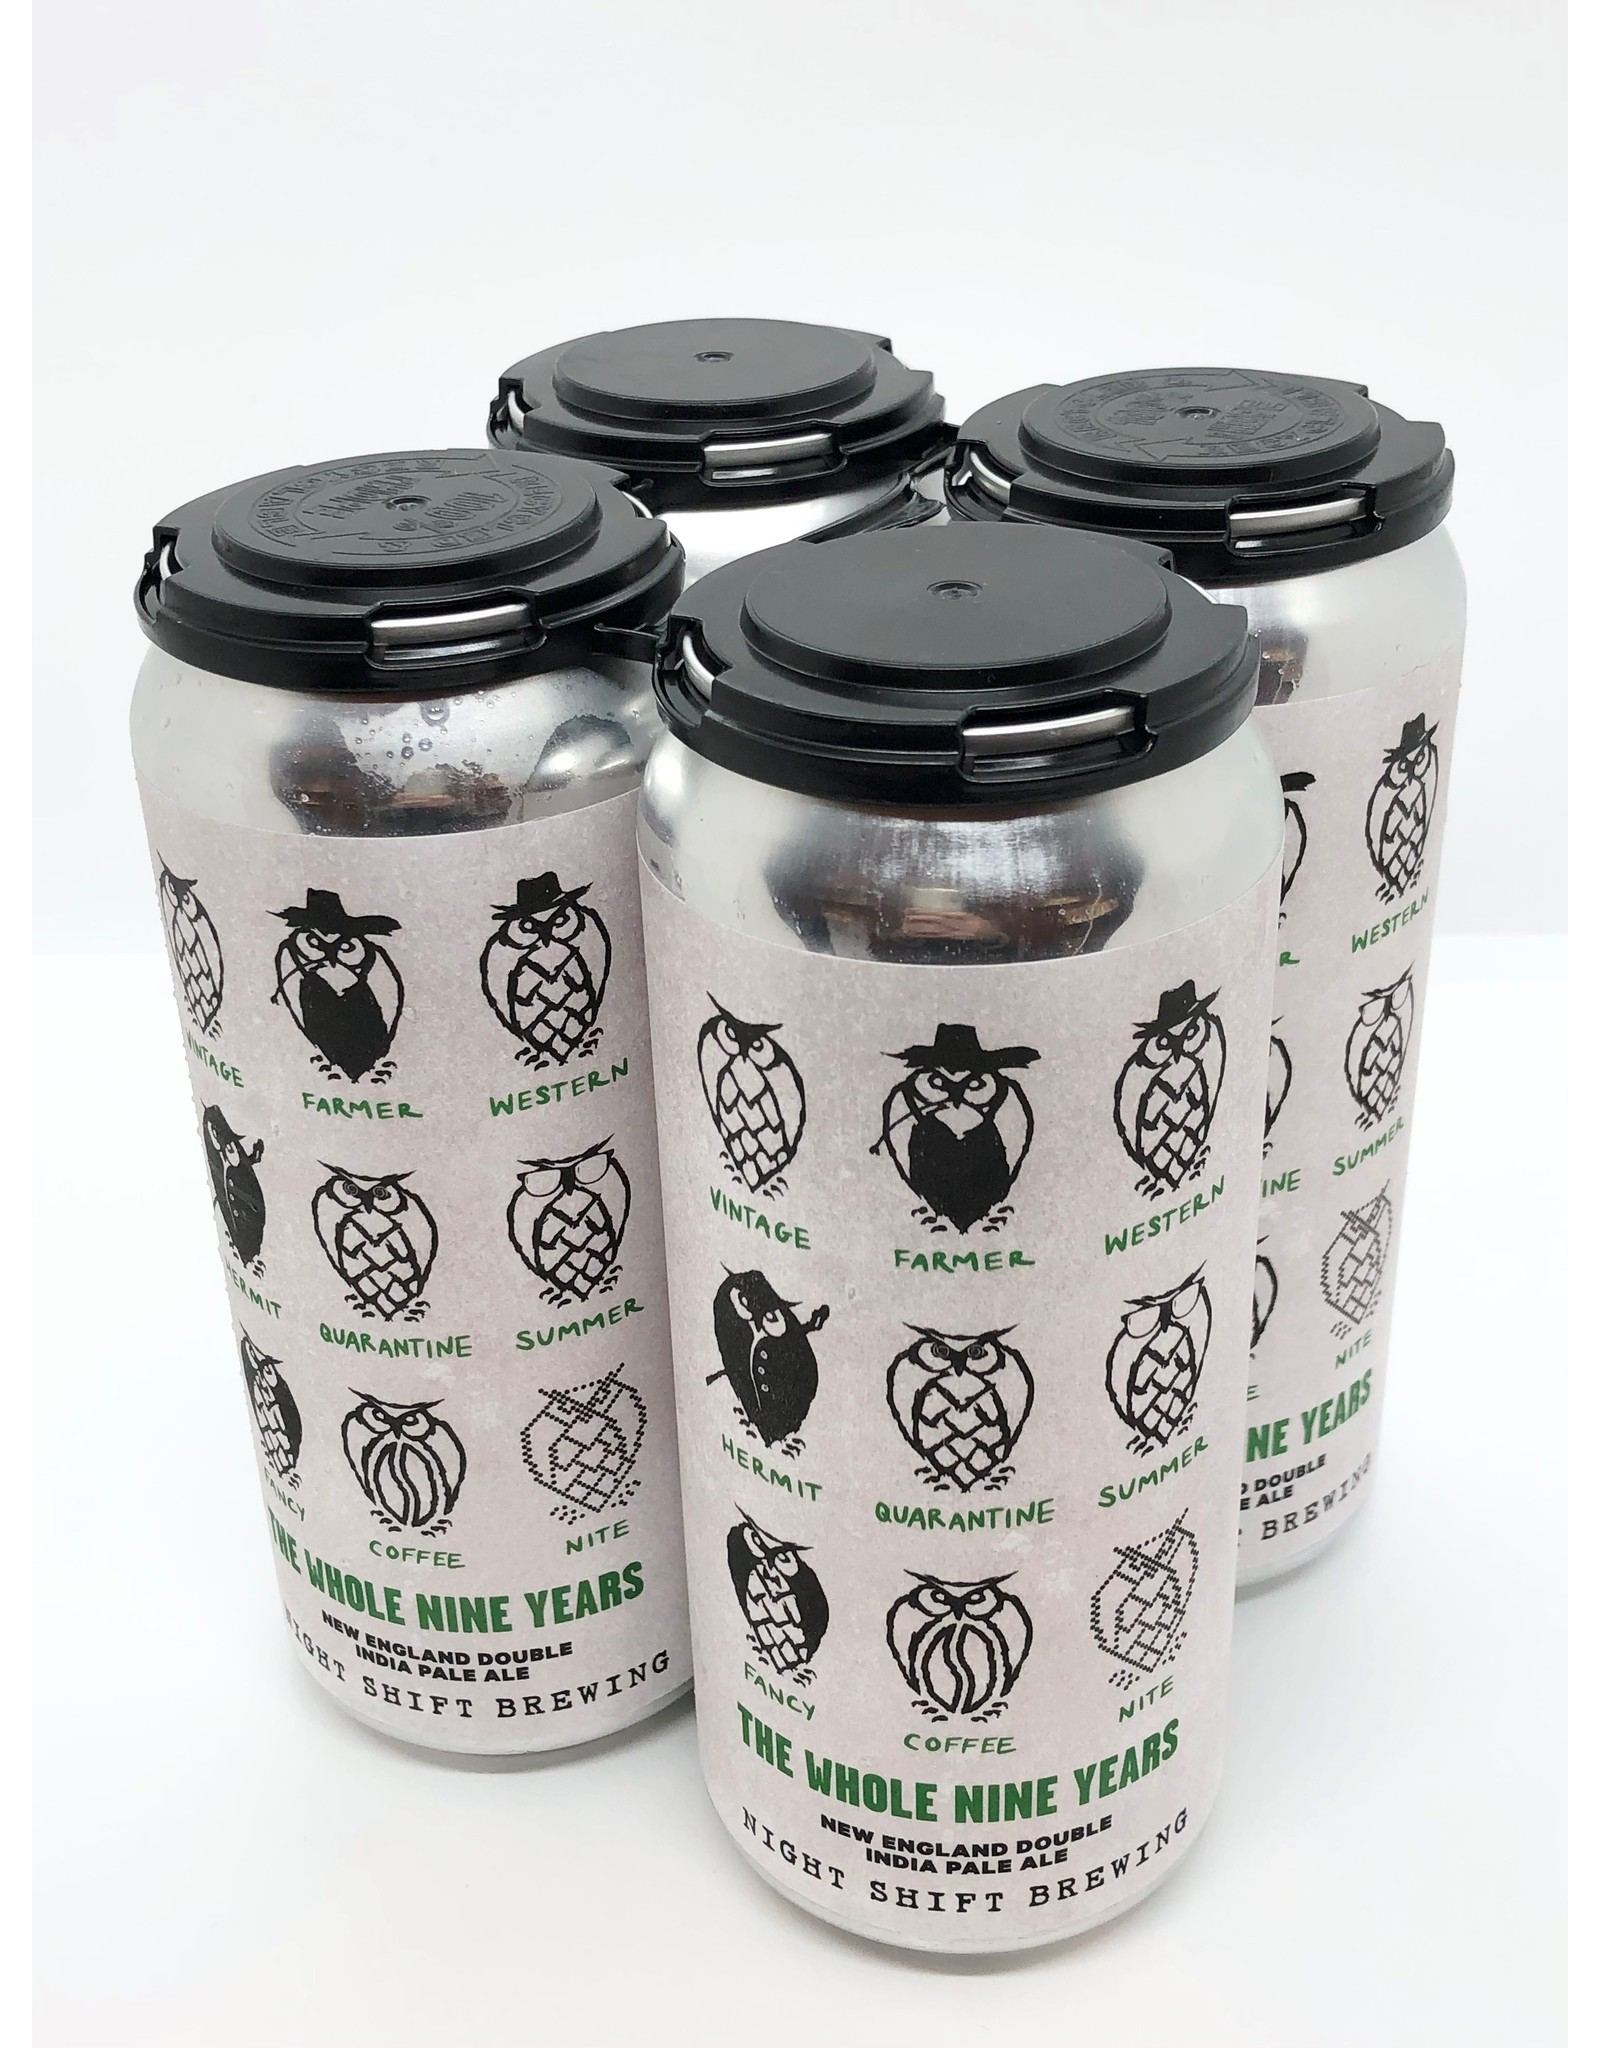 Night Shift The Whole Nine Years Double NEIPA 16oz 4pk Cans